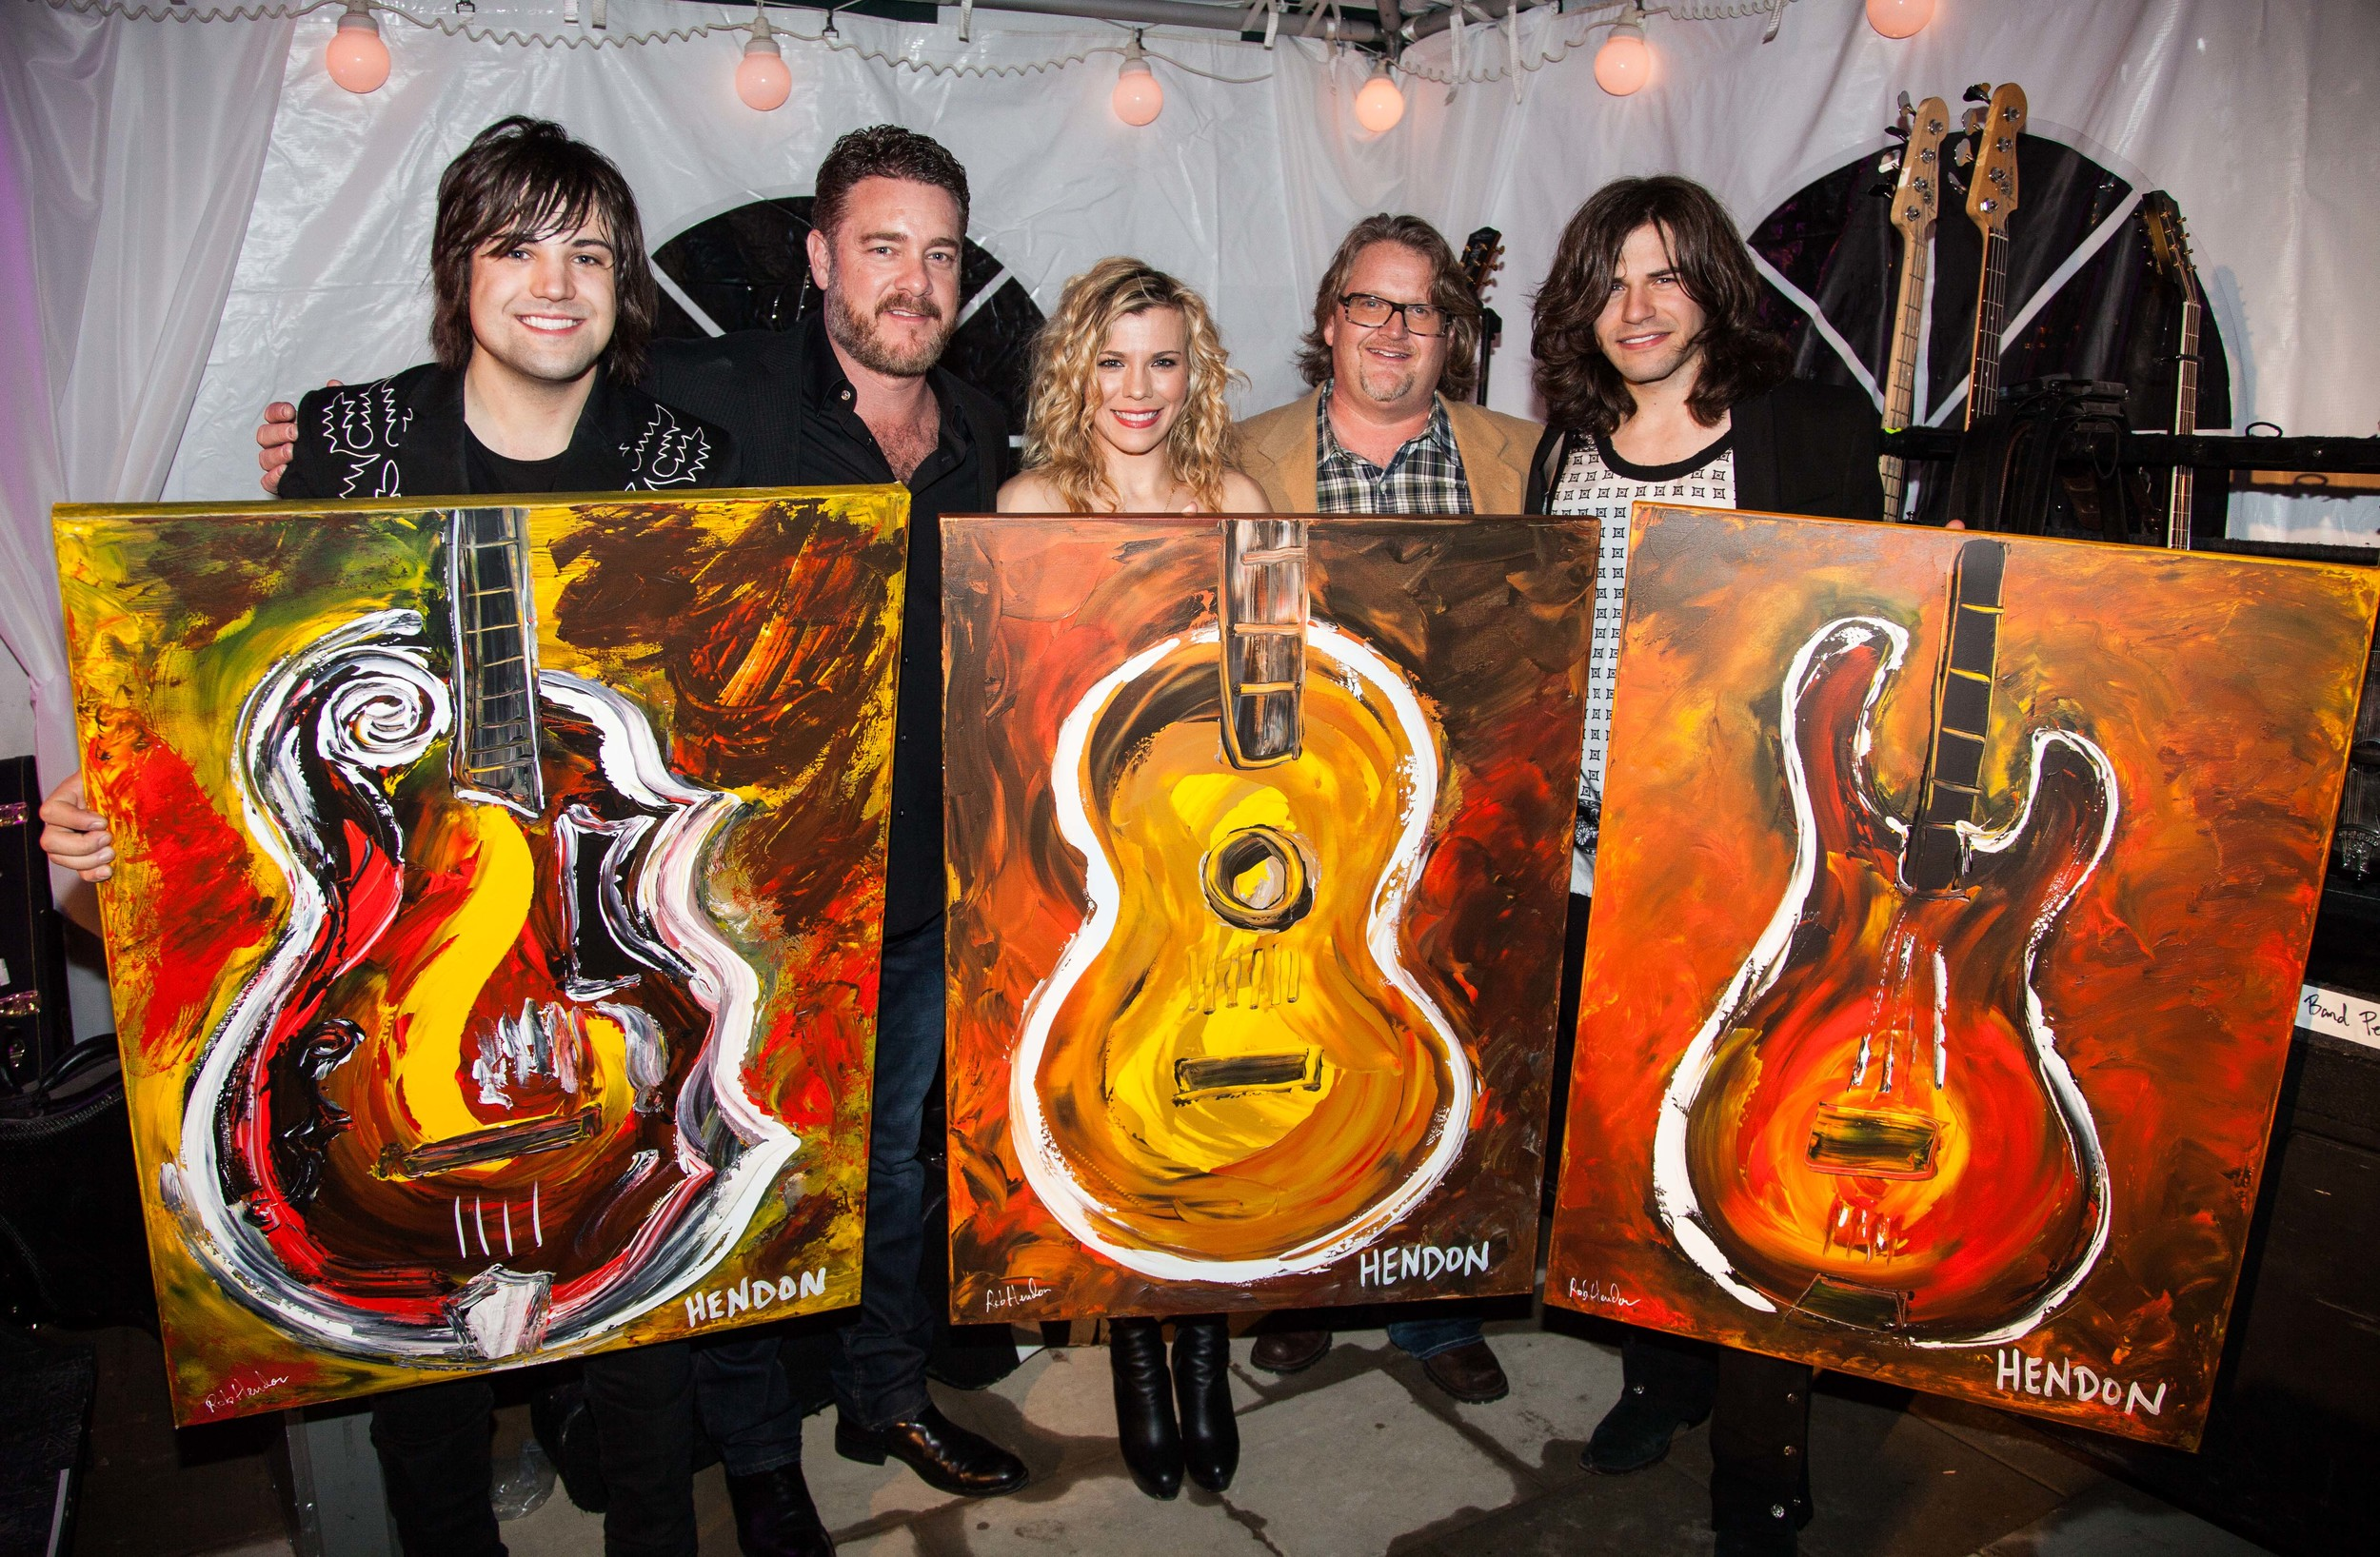 Rob created this special art for the Band Perry